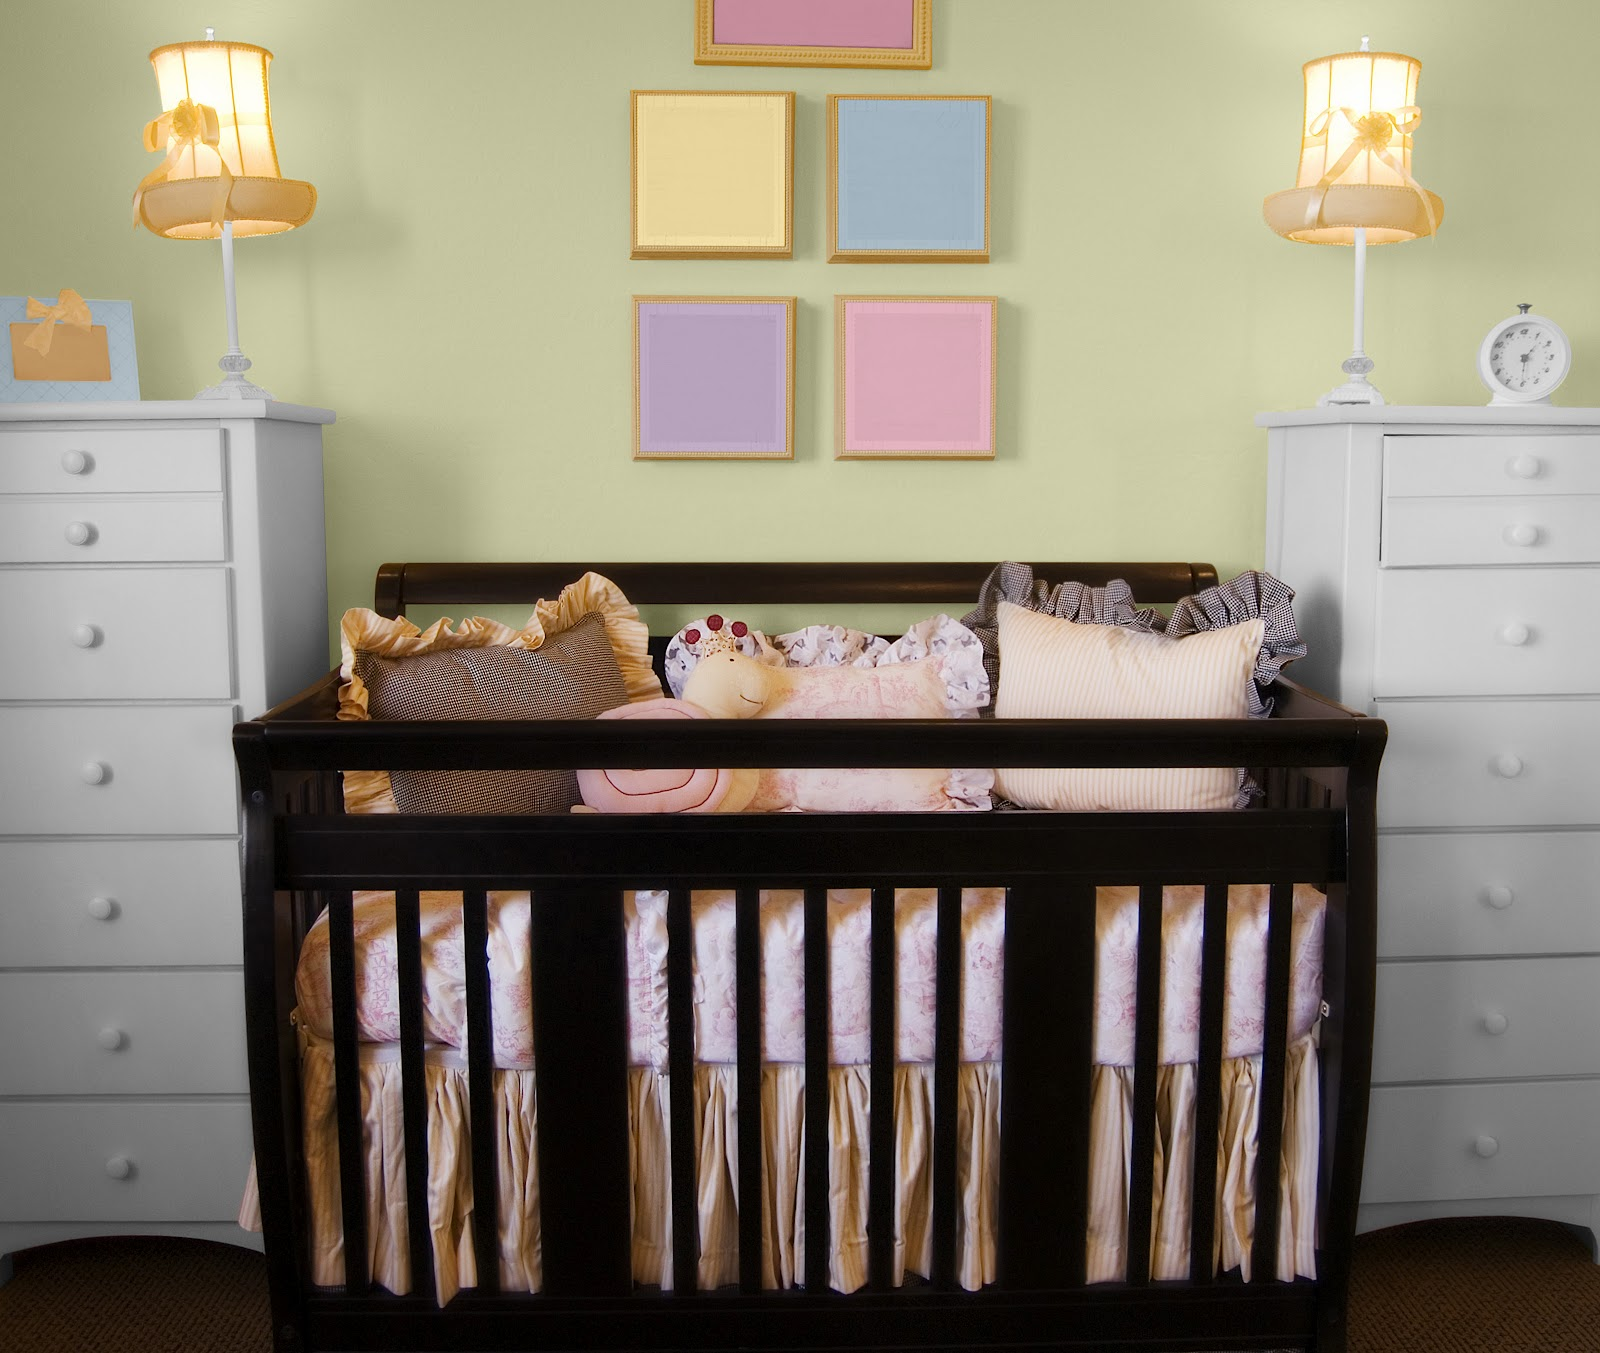 Top 10 baby nursery room colors and decorating ideas for Baby rooms decoration